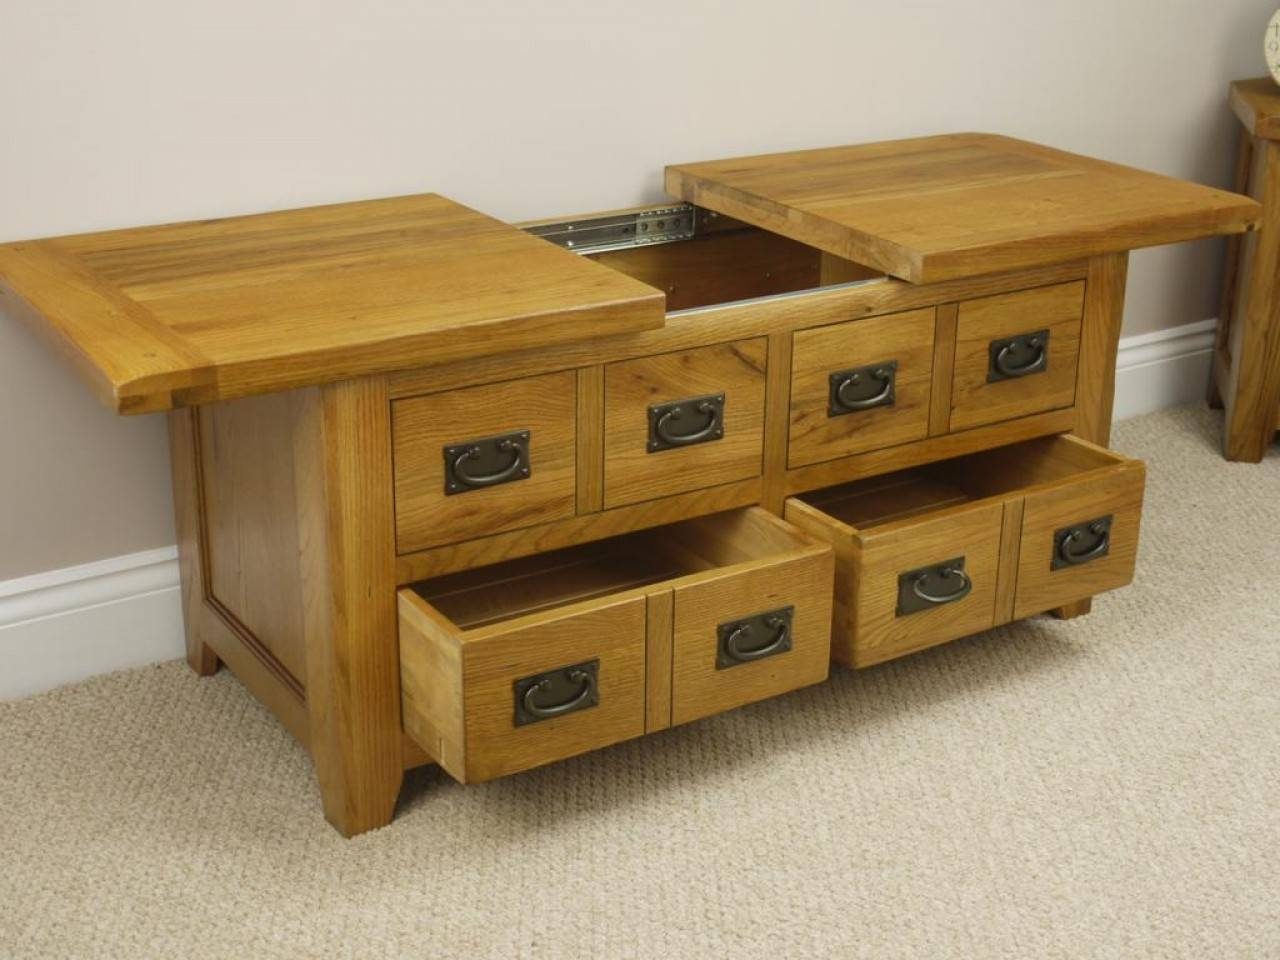 Furniture: Unique Rustic Coffee Table For Elegant Living Room Within Rustic Coffee Table Drawers (View 9 of 30)